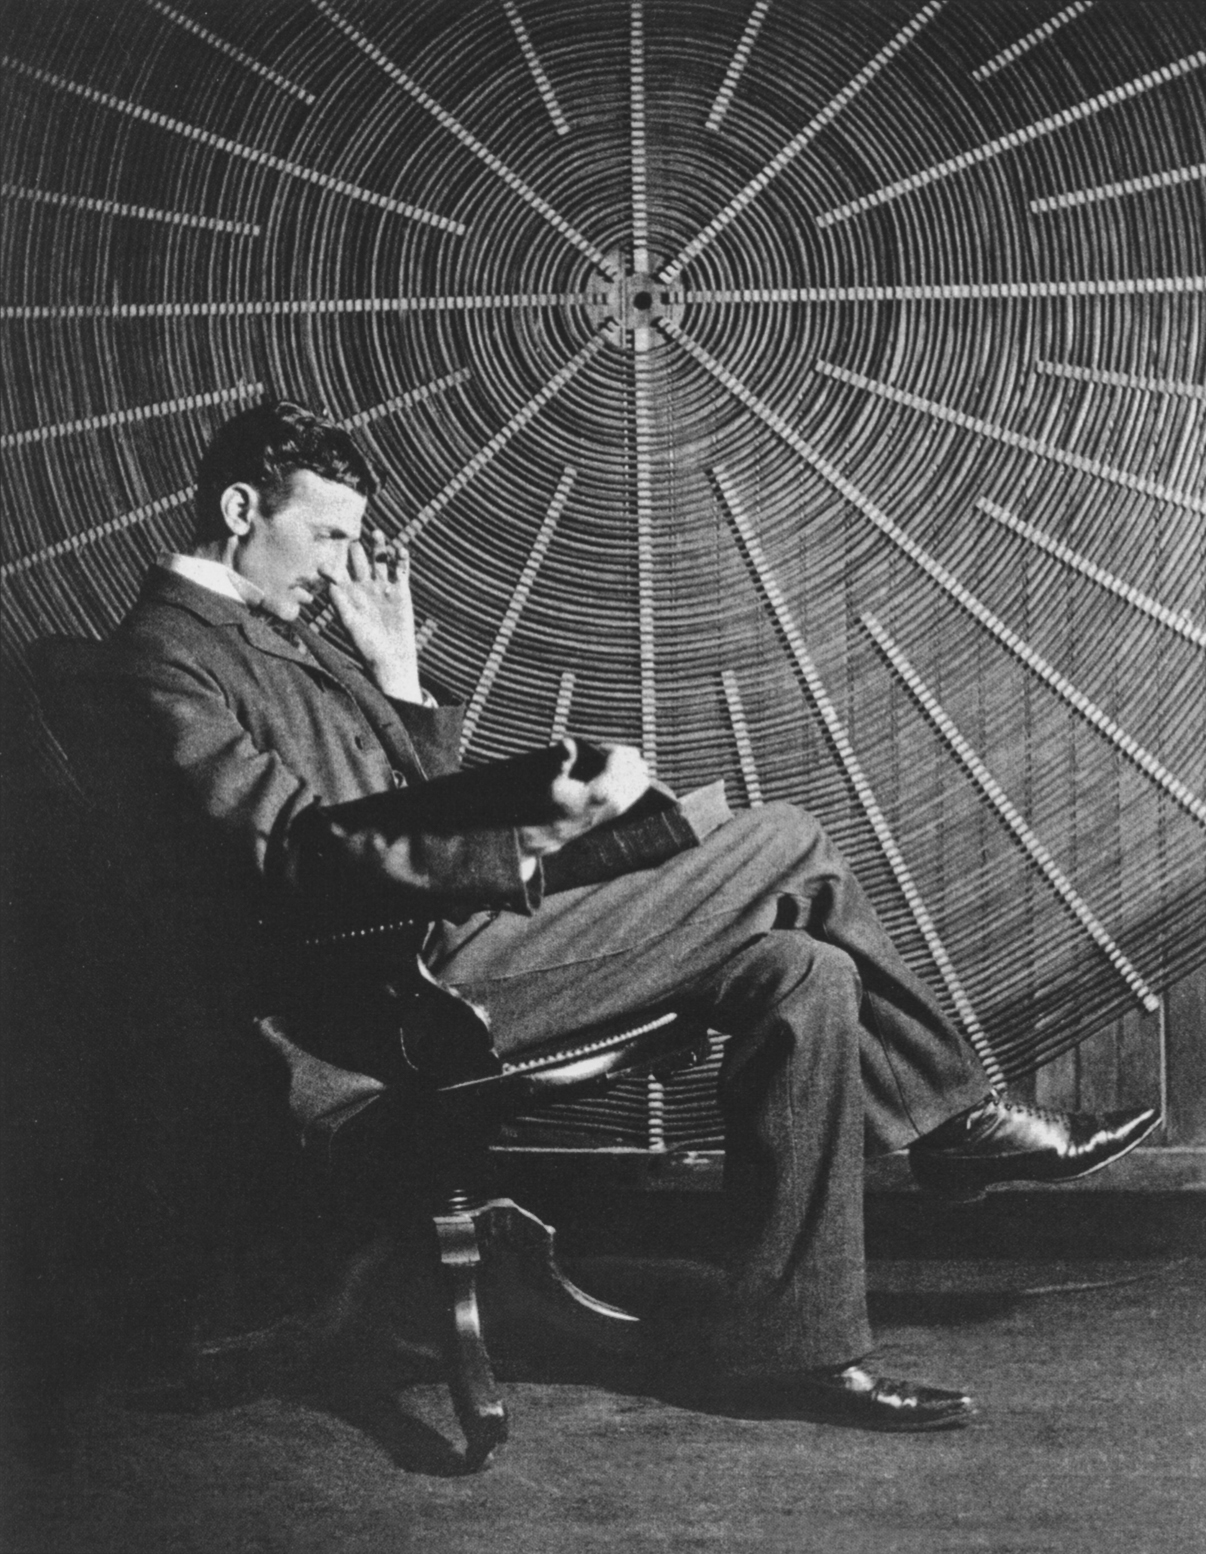 Nikola Tesla, the quirky inventor   Tonnelé and Co./Wikimedia Commons  (public domain)